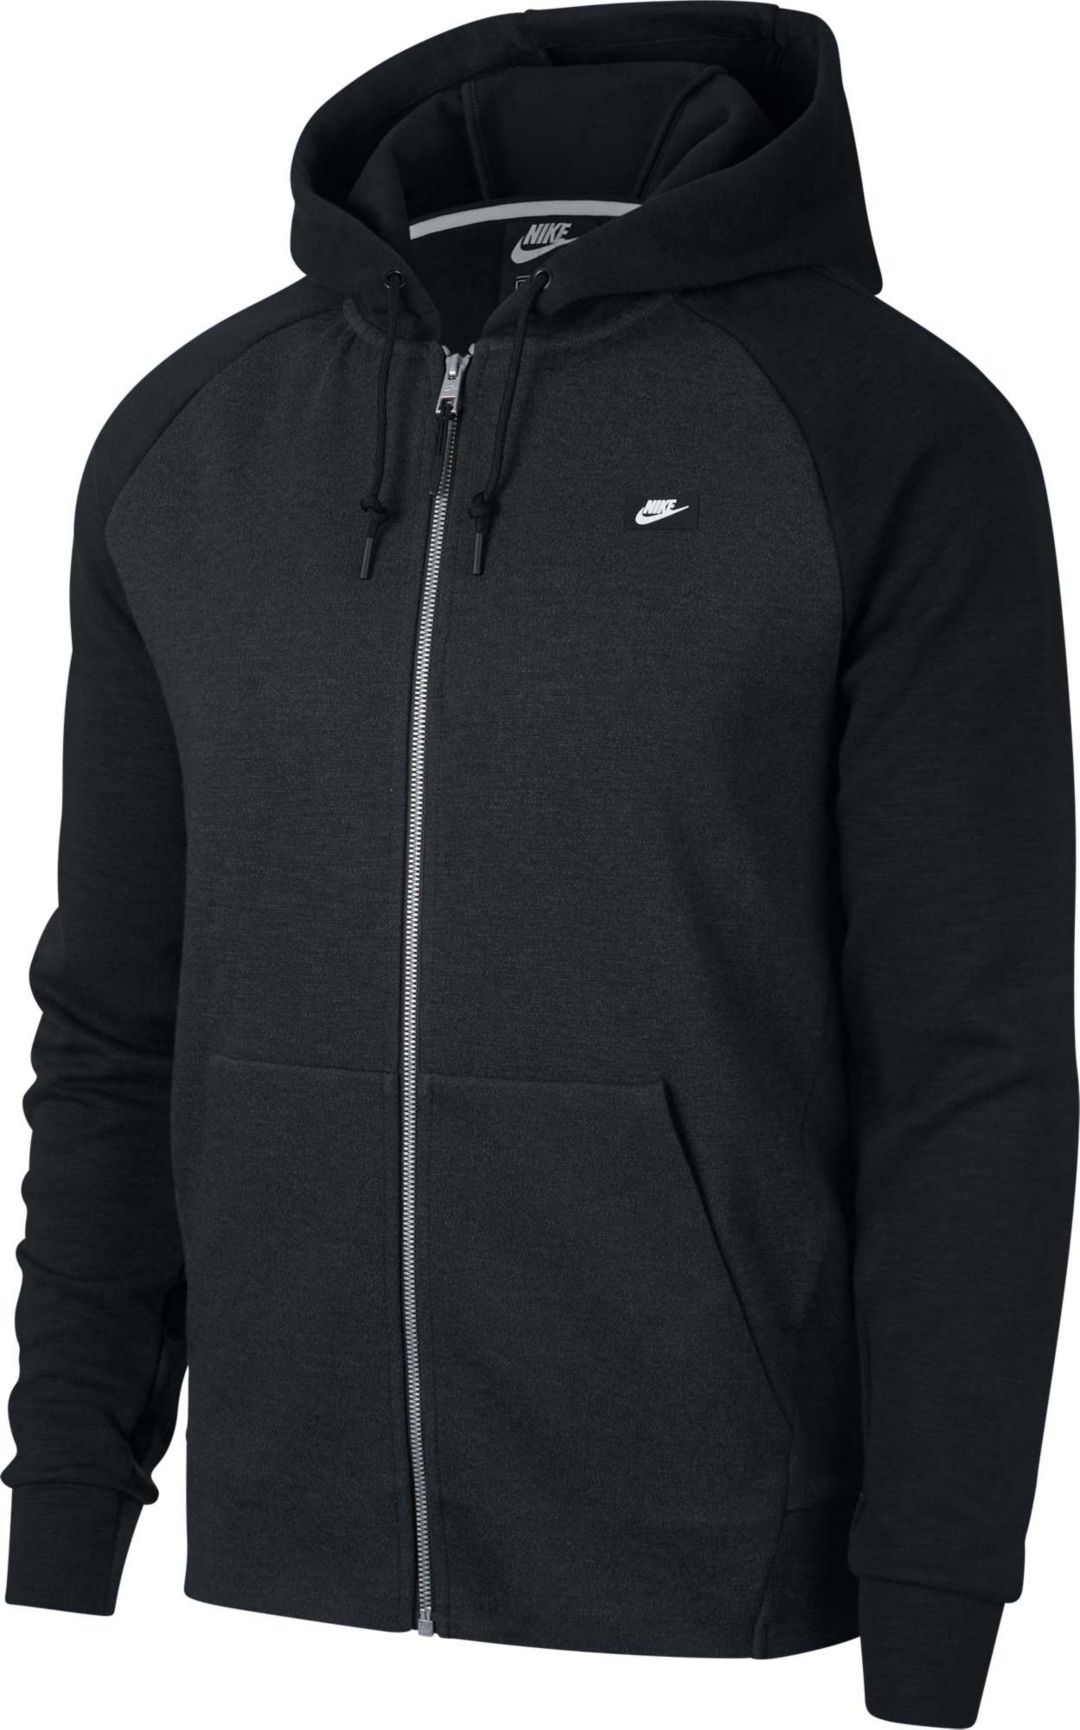 b4b060f470 Nike Men's Sportswear Optic Full-Zip Hoodie | DICK'S Sporting Goods